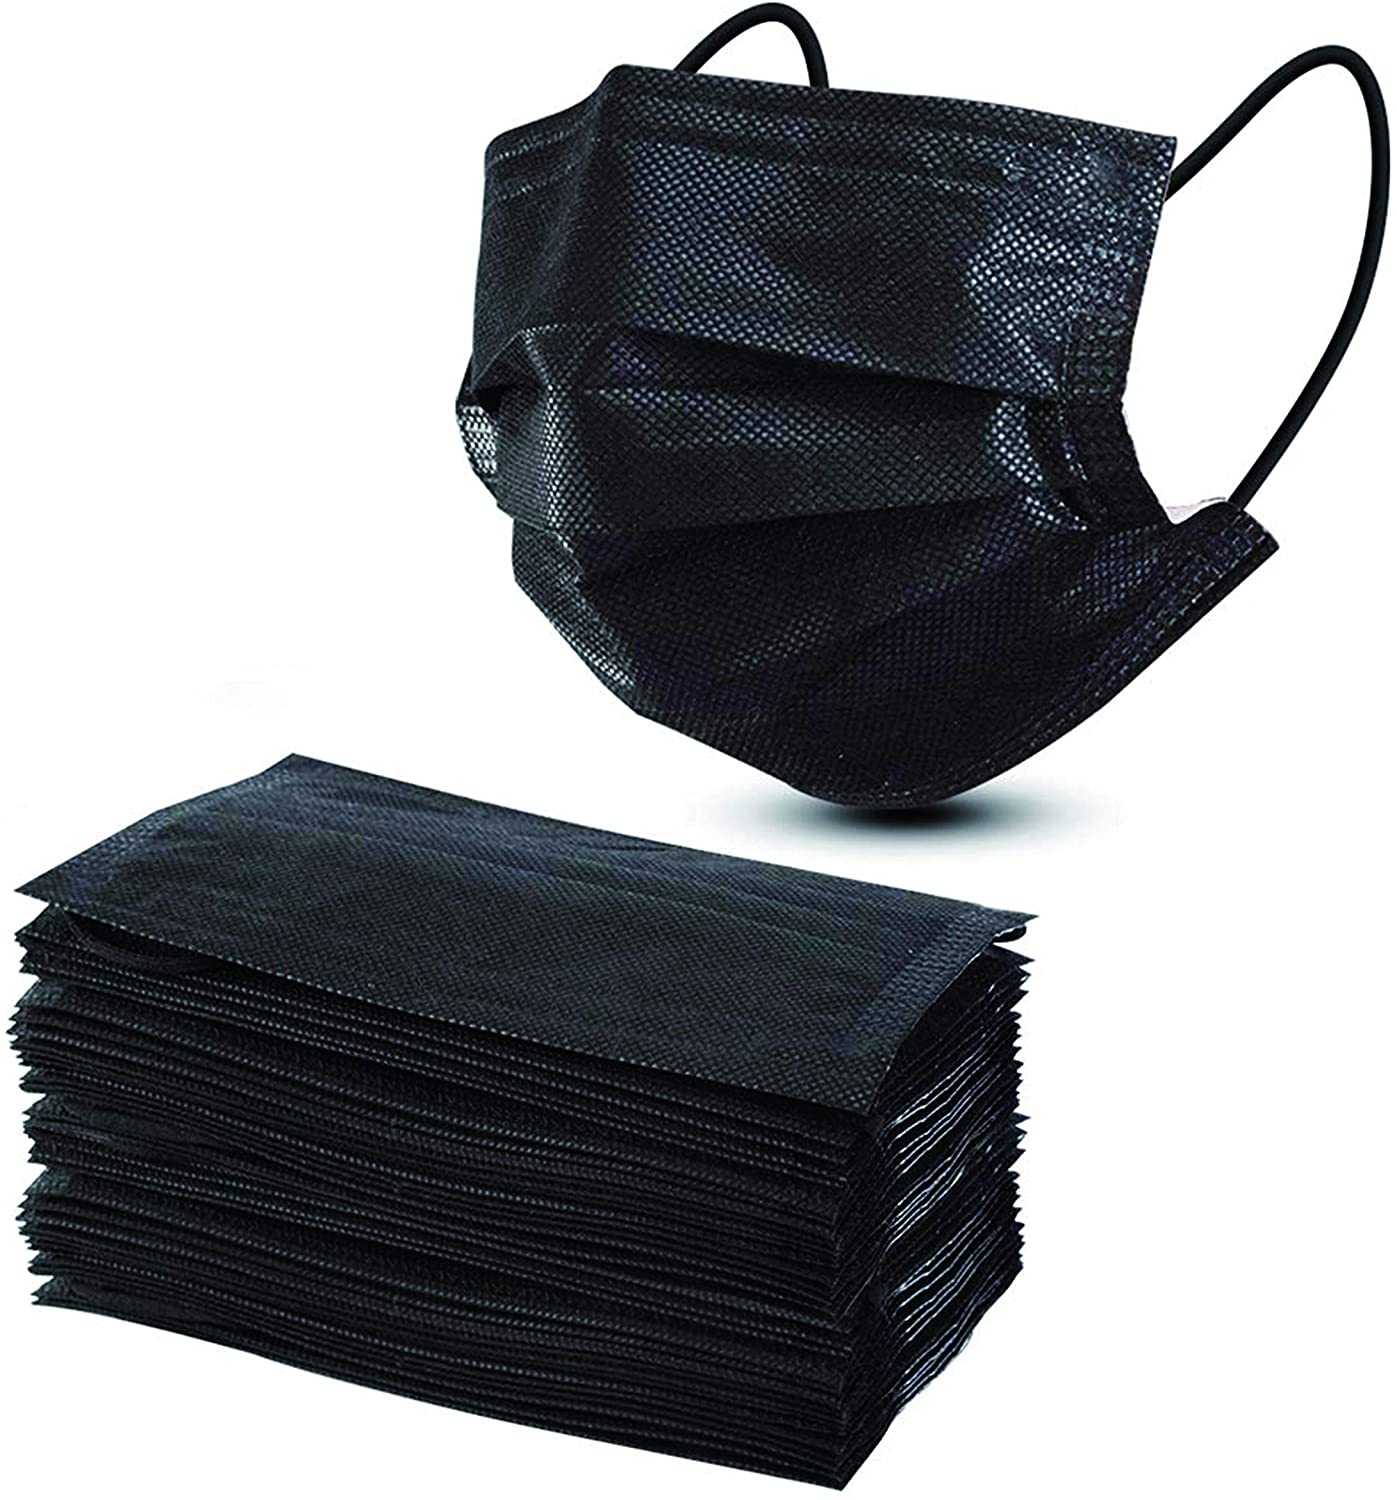 Generise Surgical 3 Ply Face Masks x10 - BLACK, Work Safety Protective Equipment by Generise